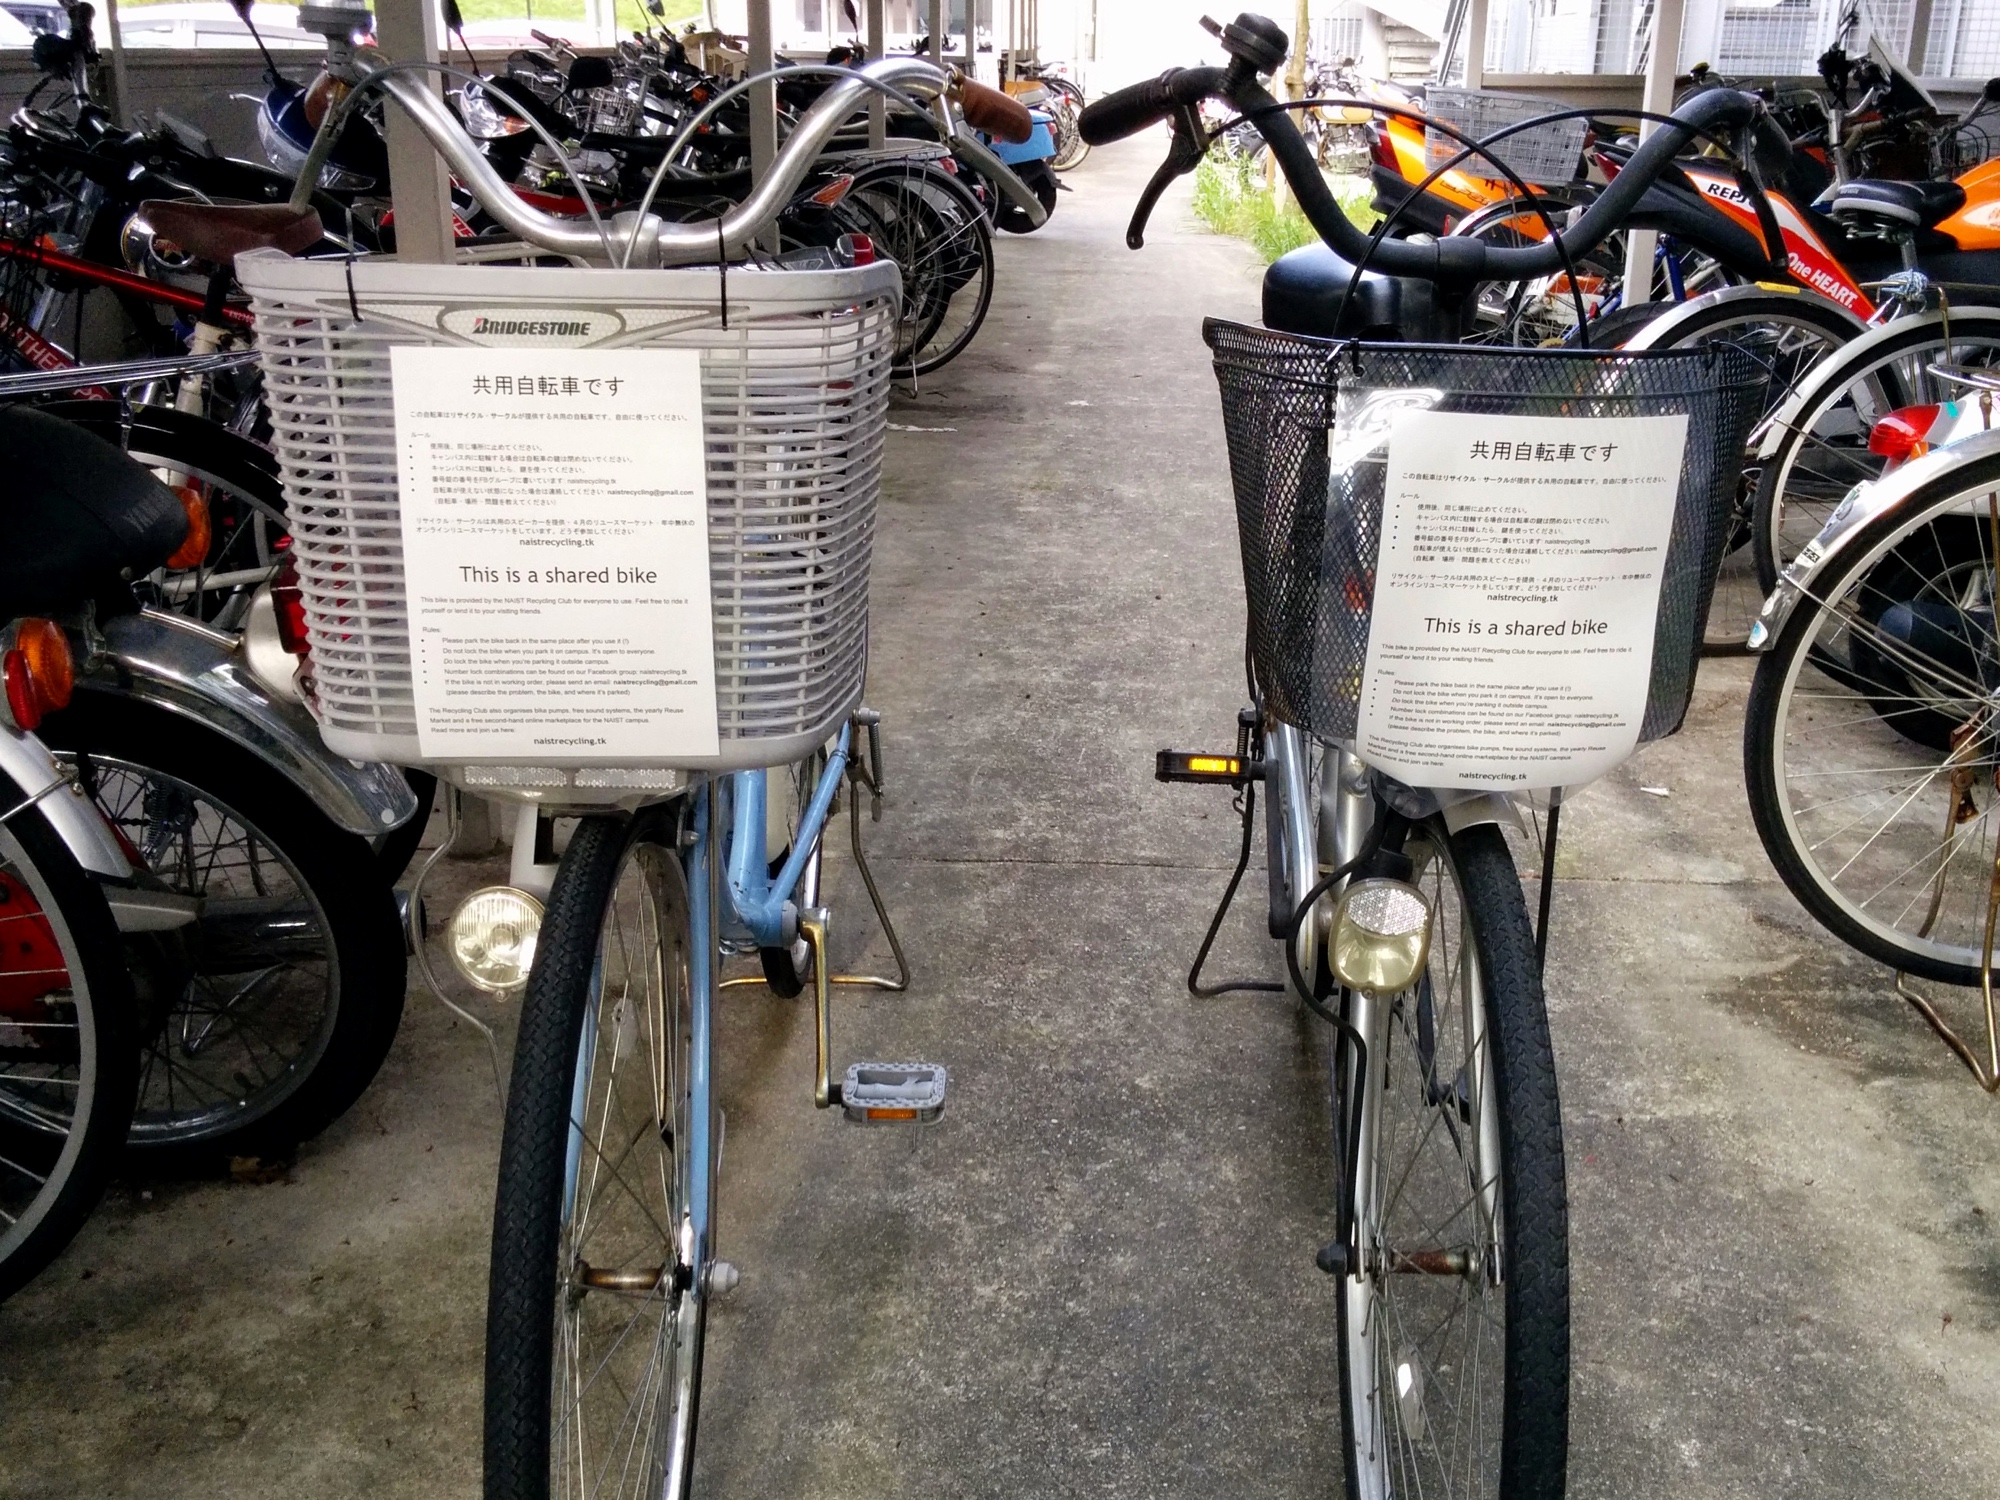 Bike-sharing system at NAIST, courtesy of Recycling Club.